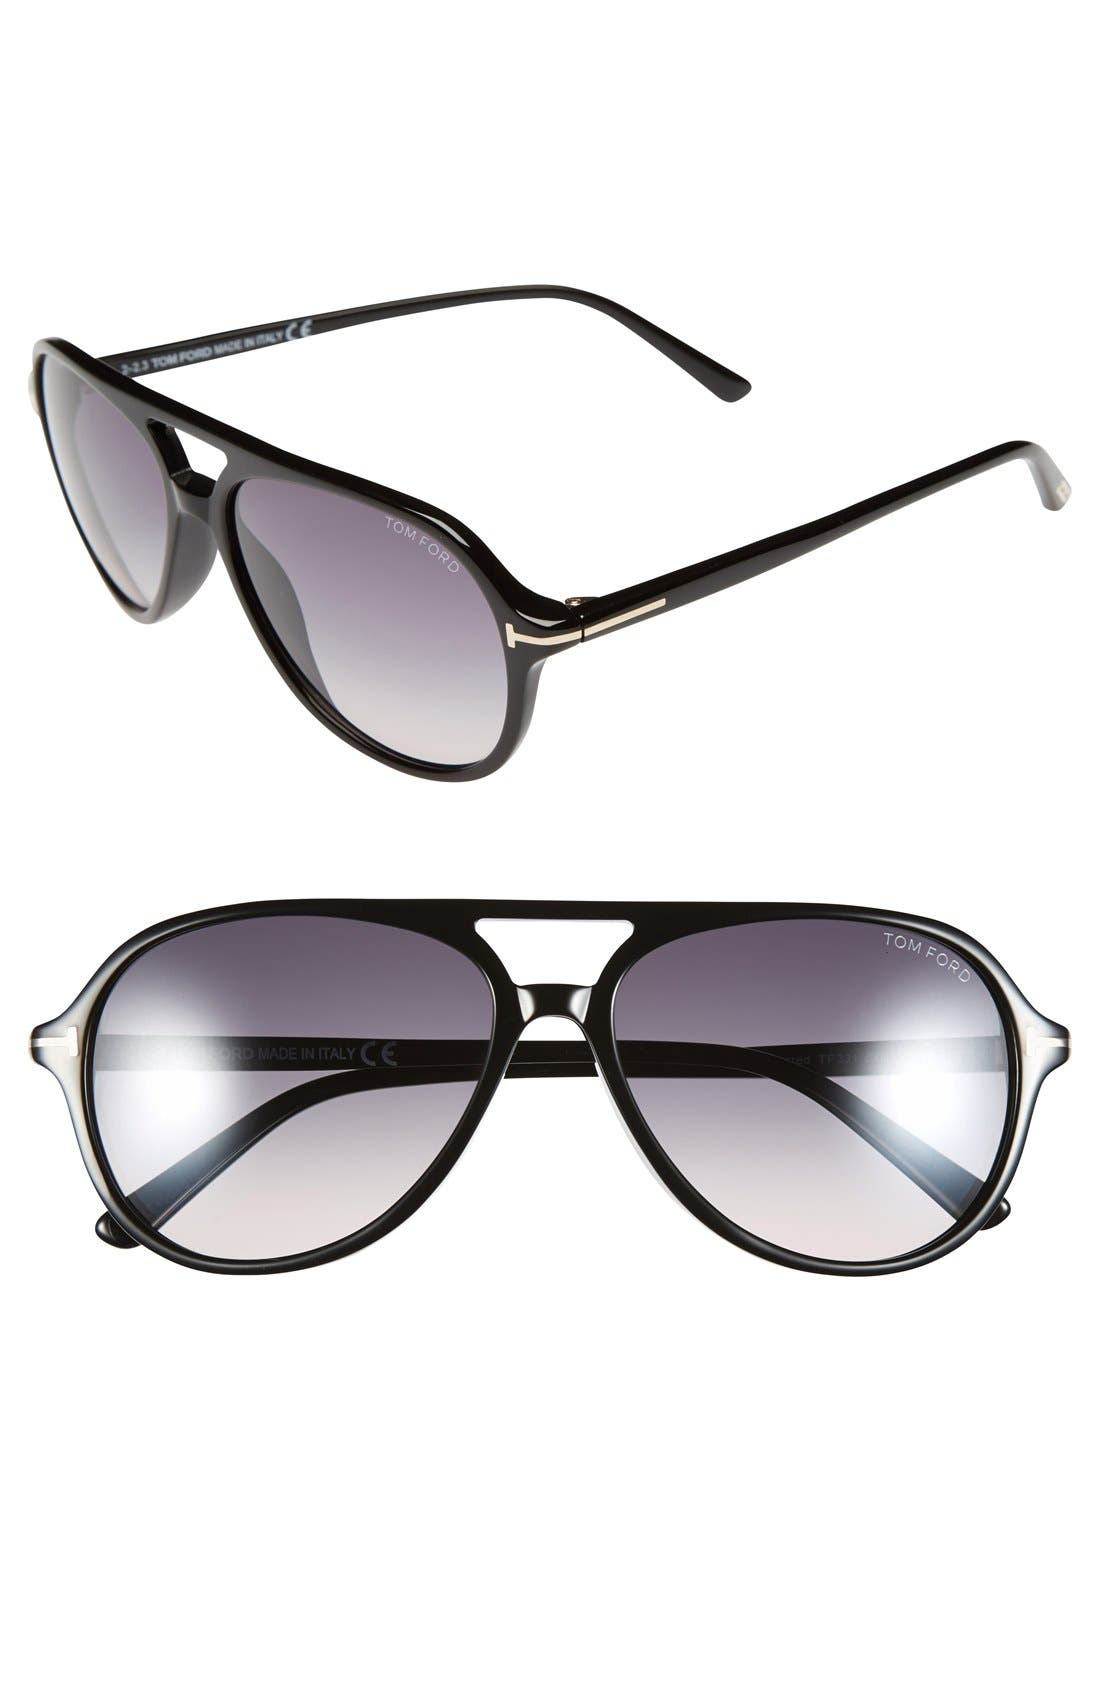 Alternate Image 1 Selected - Tom Ford 'Jared' 58mm Sunglasses